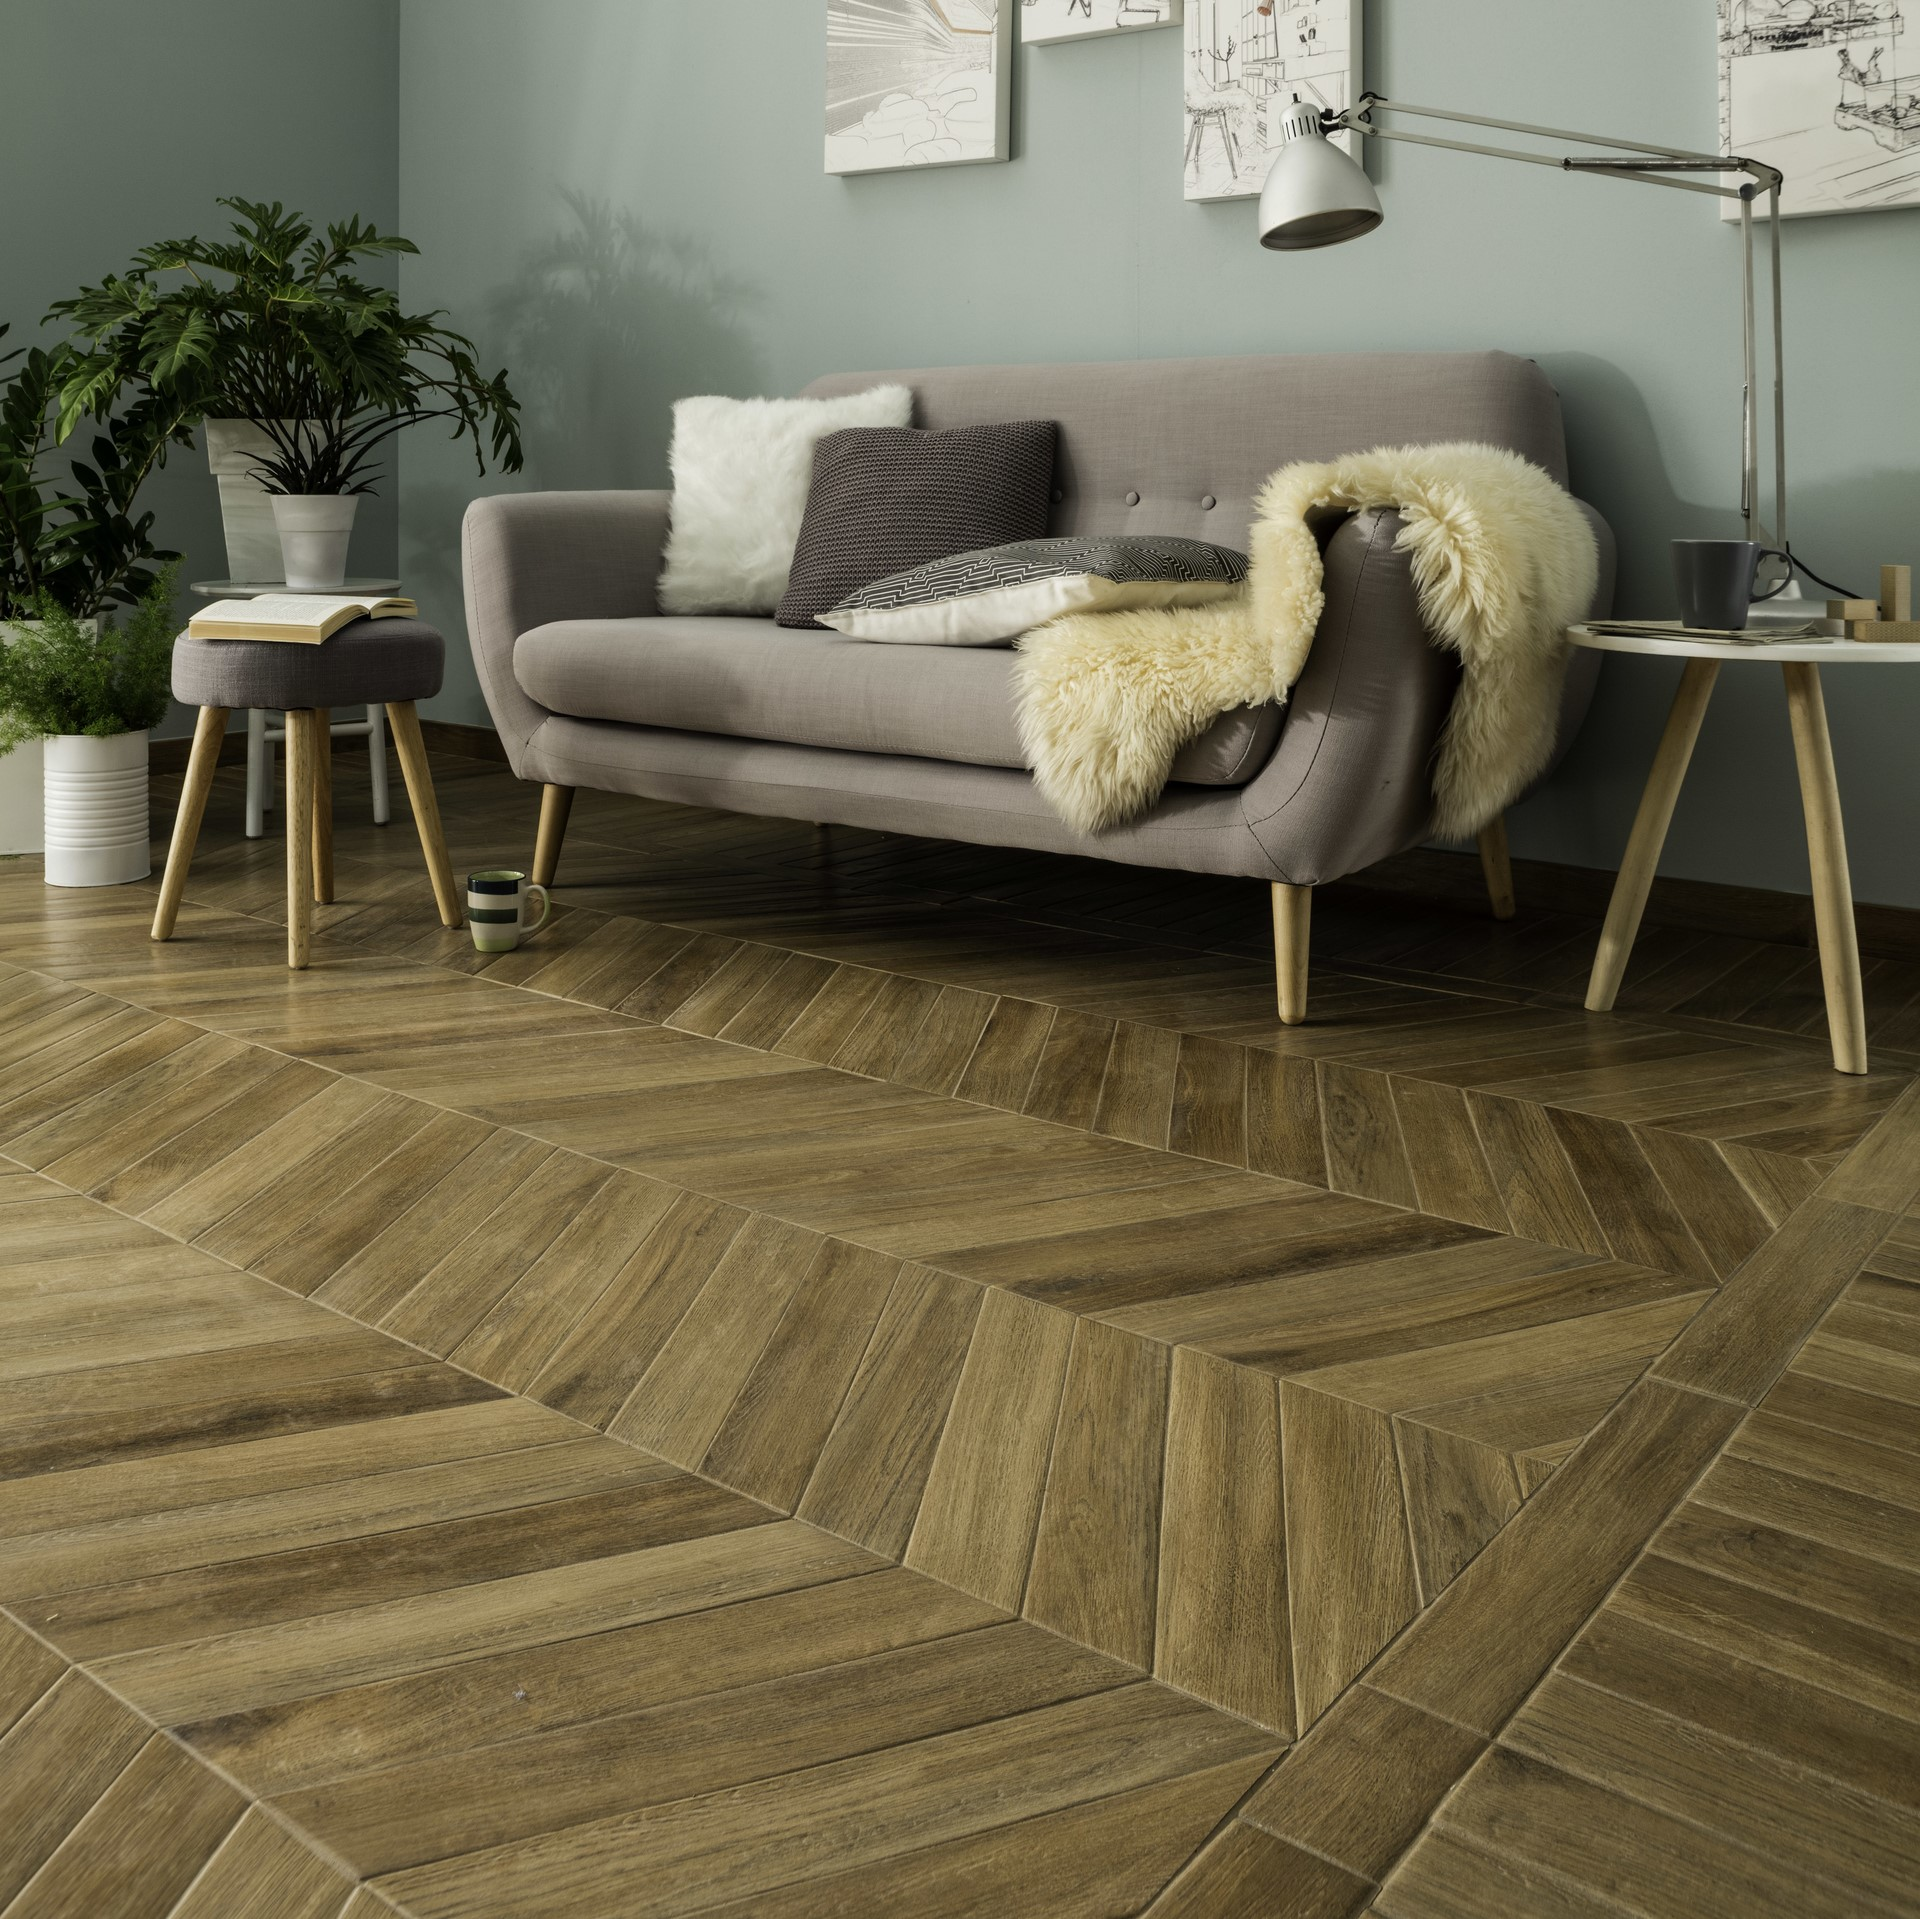 Chevron Wood Effect Parquet Look Porcelain